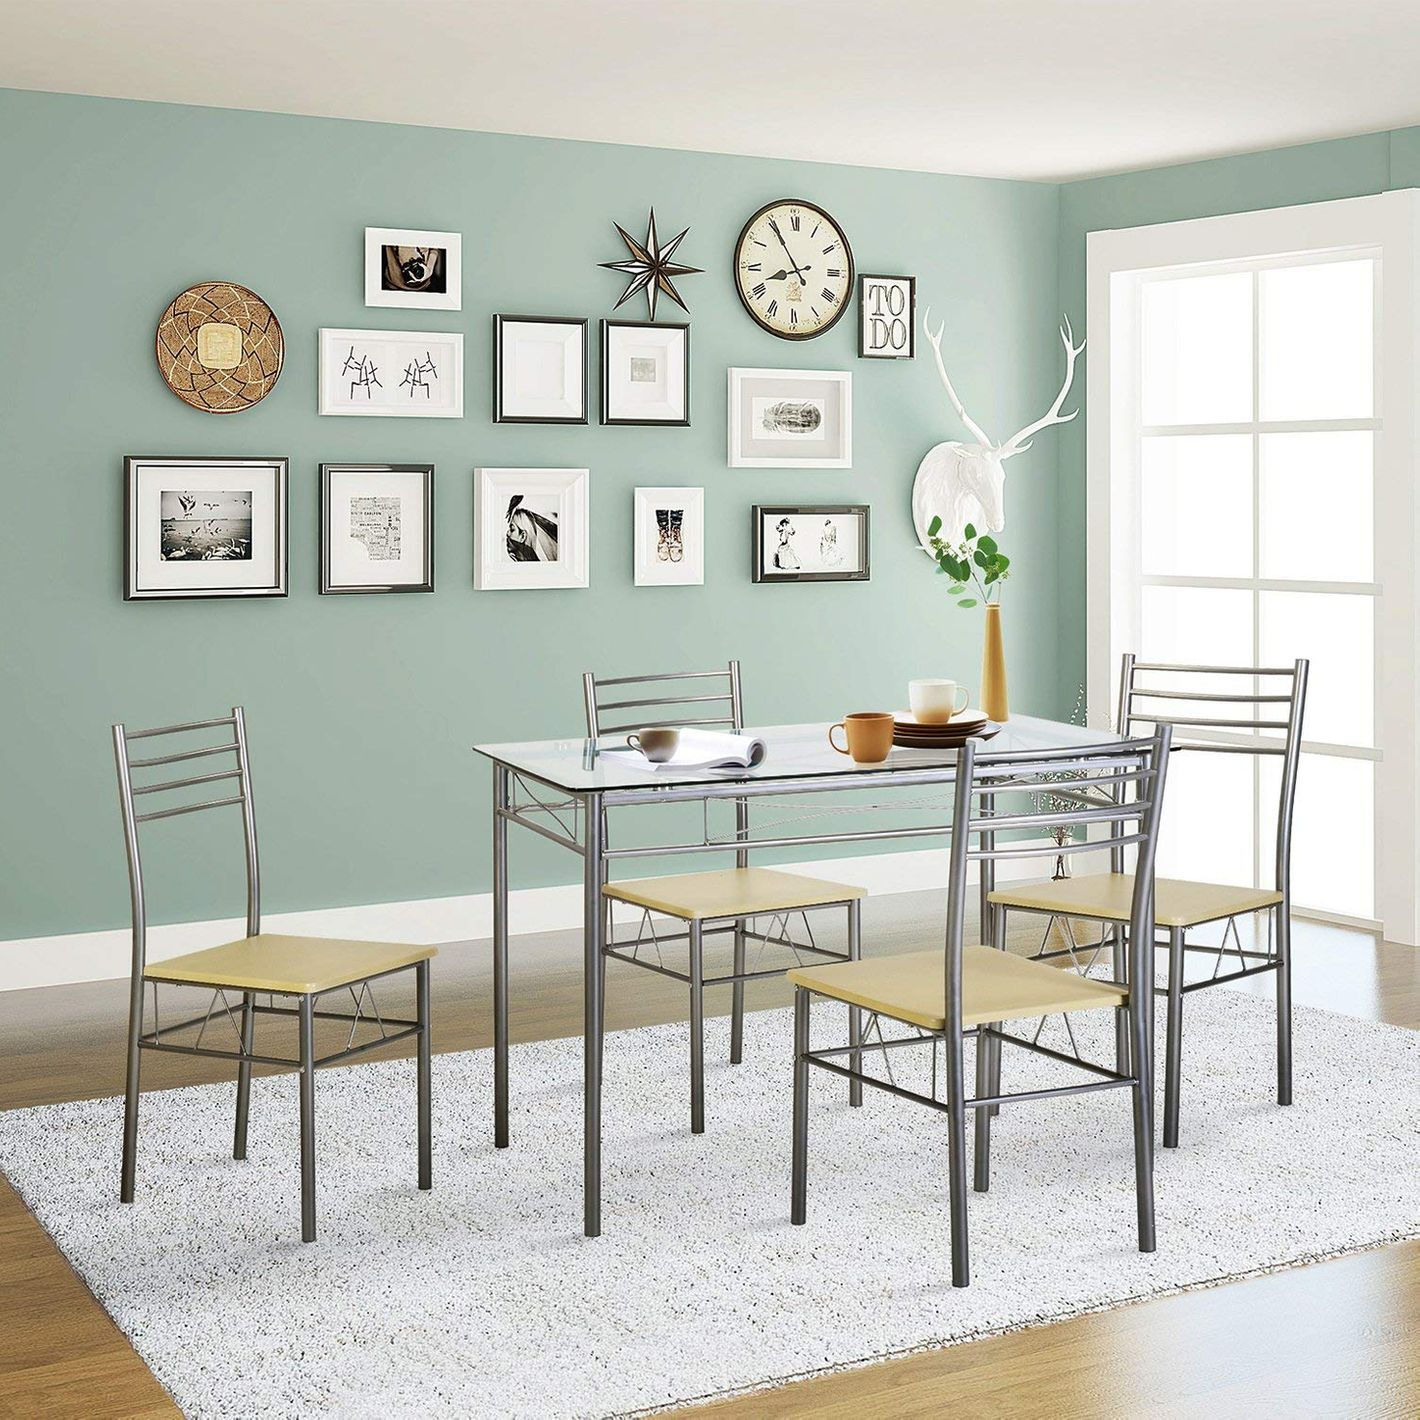 VECELO Dining Table With 4 Chairs, Silver